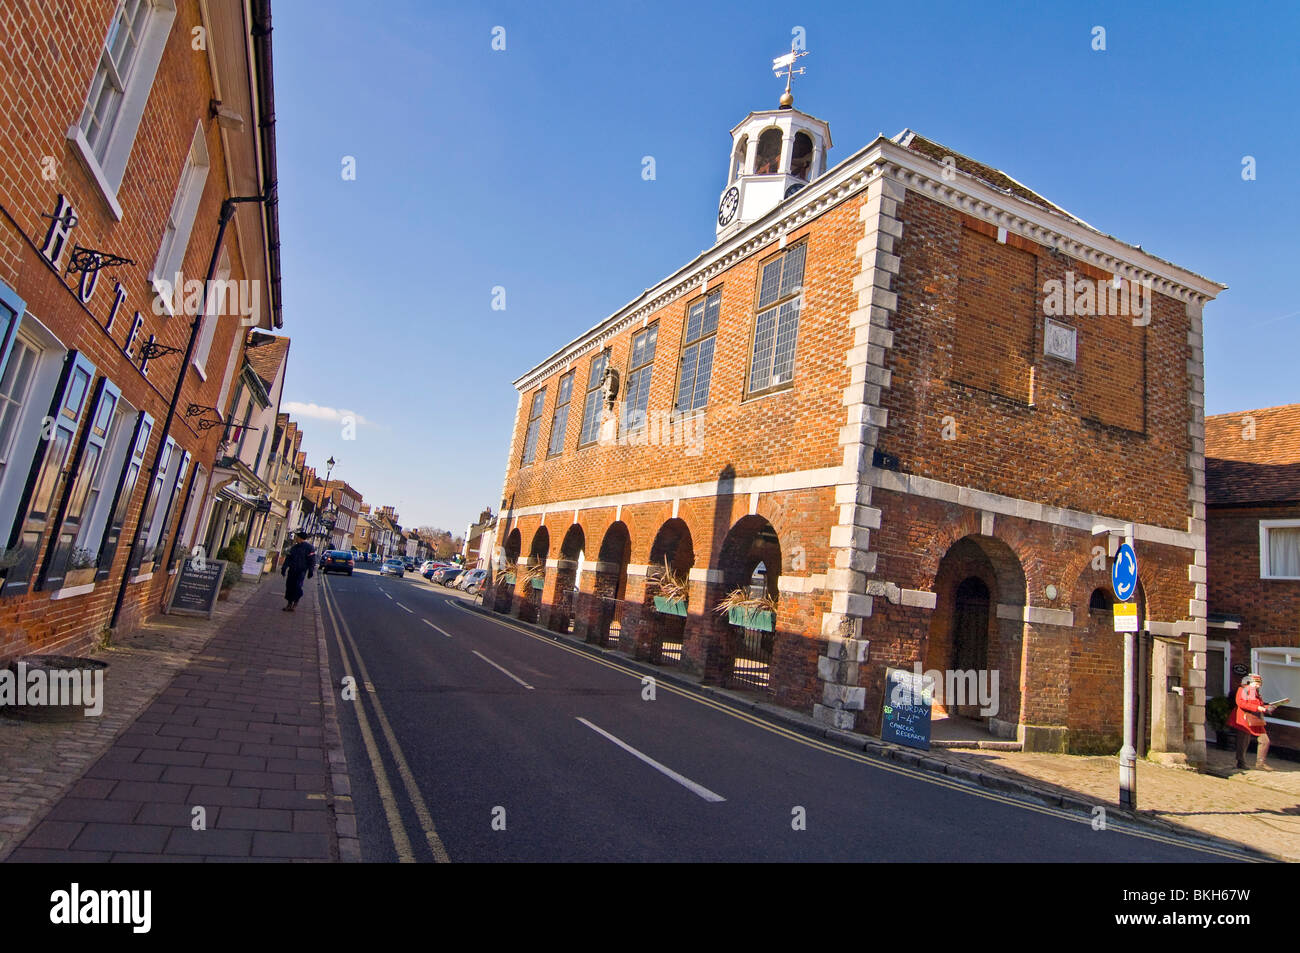 Horizontal wide angle view of the prominent red brick Market Hall in Old Amersham High Street on a sunny day. Stock Photo